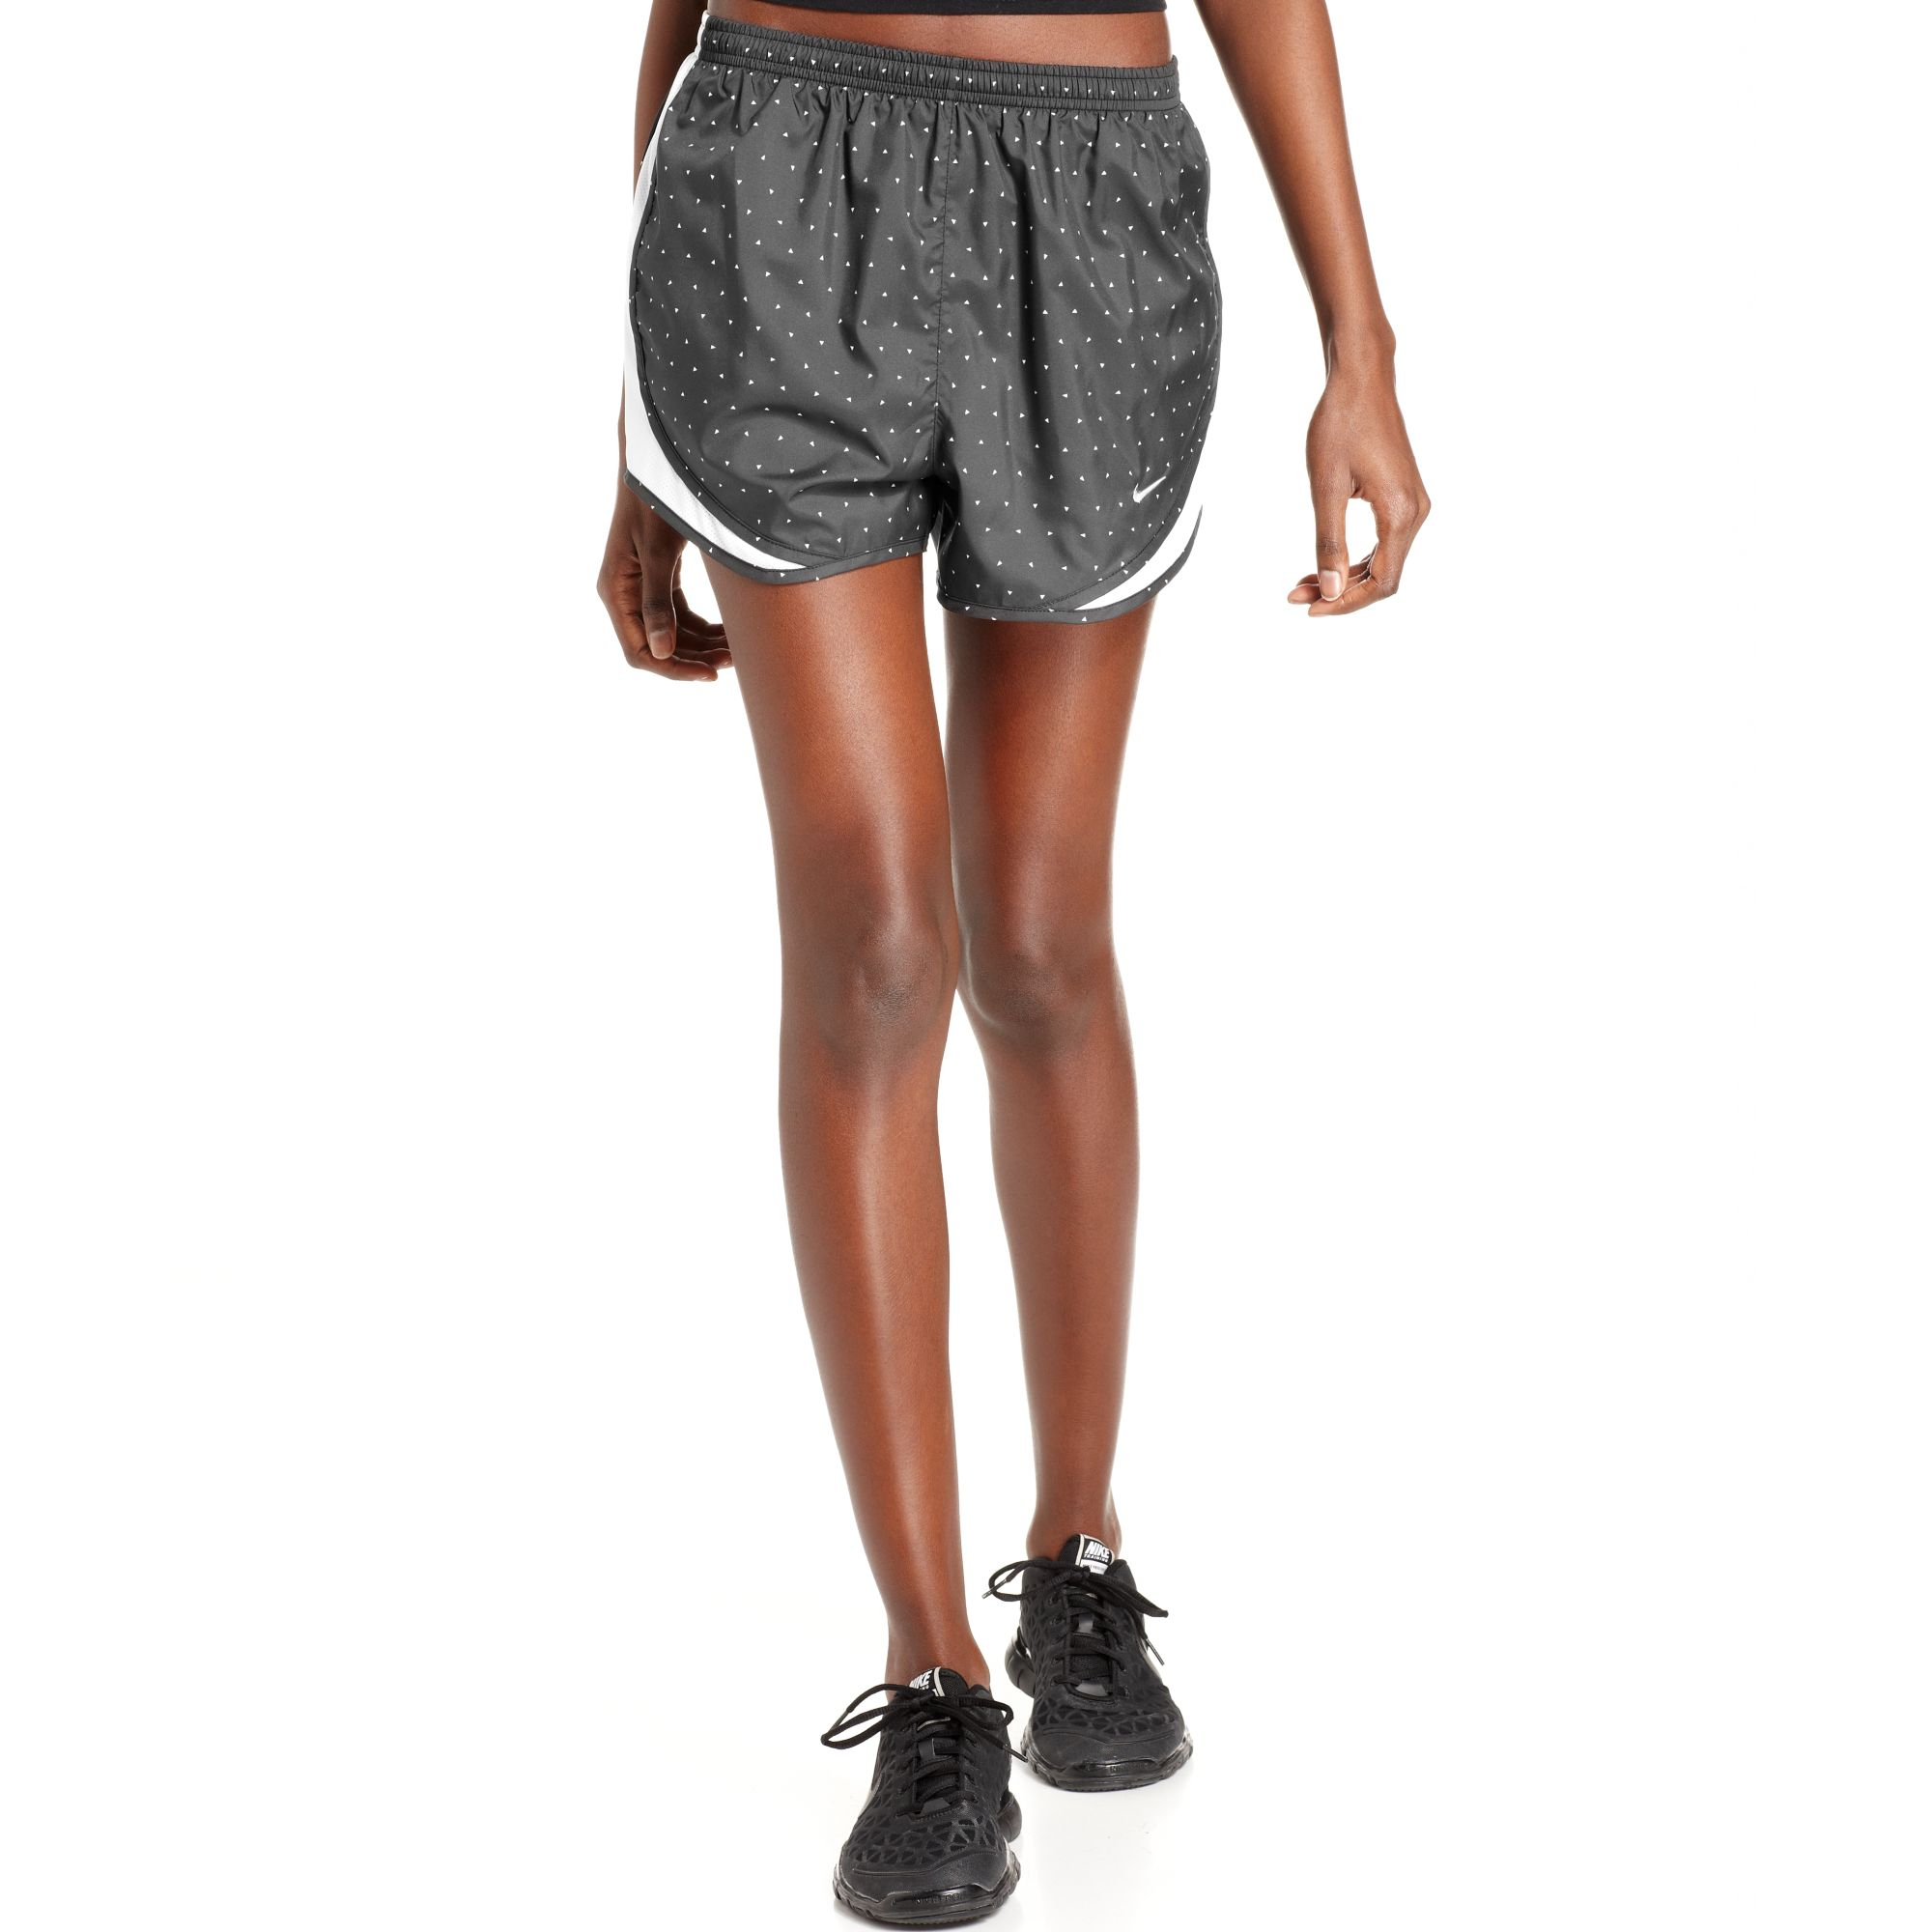 Nike womens running shorts with liner - Gallery